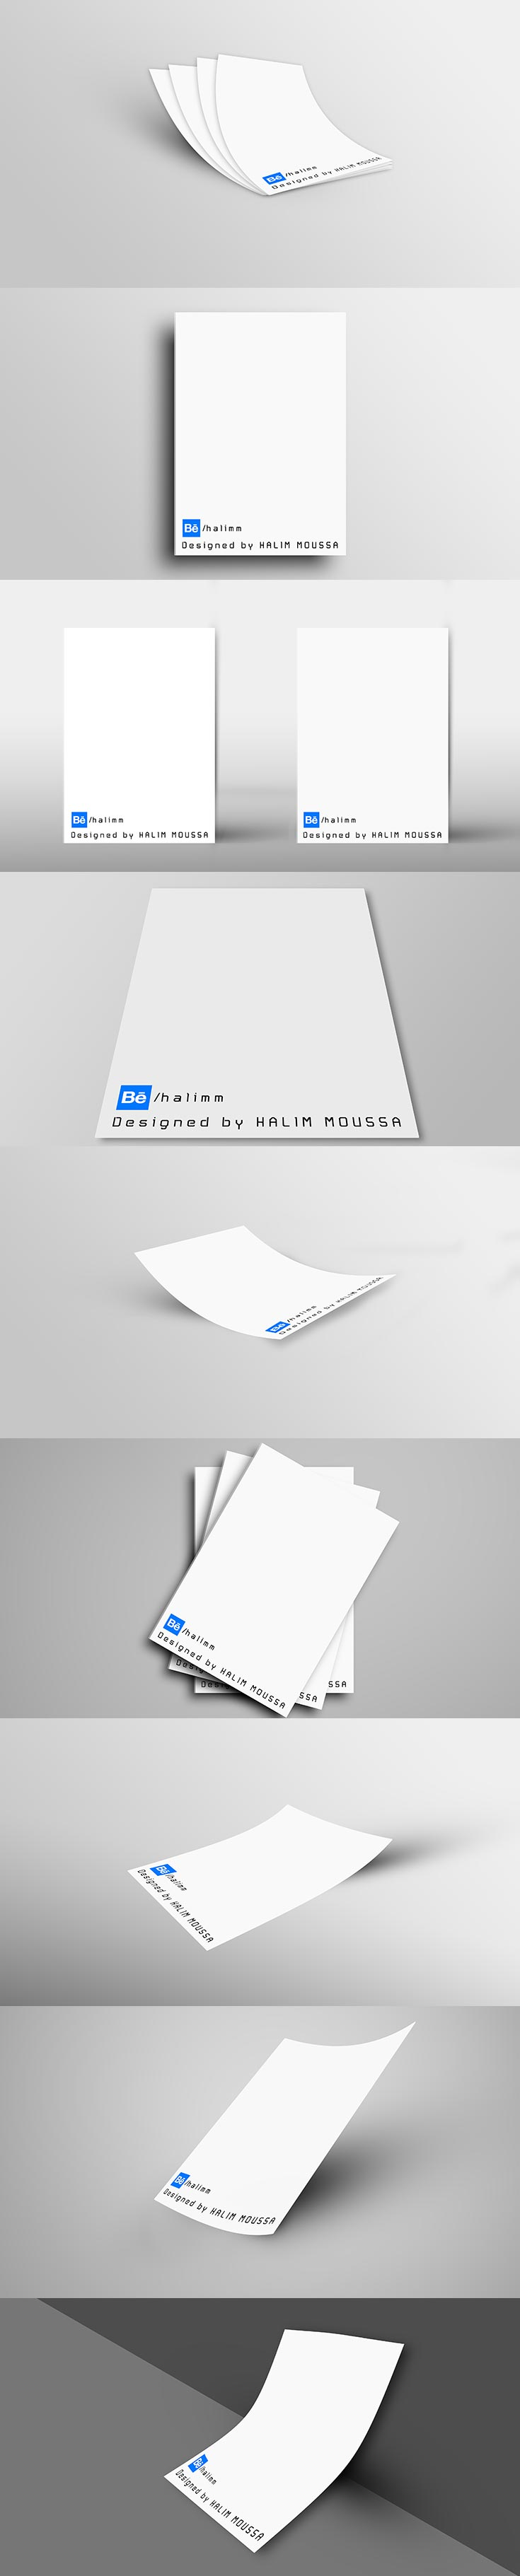 10 Free Correspondence Paper Mockup PSD is a high quality mockup that you can use to display your branding or other stuff that can be printed.